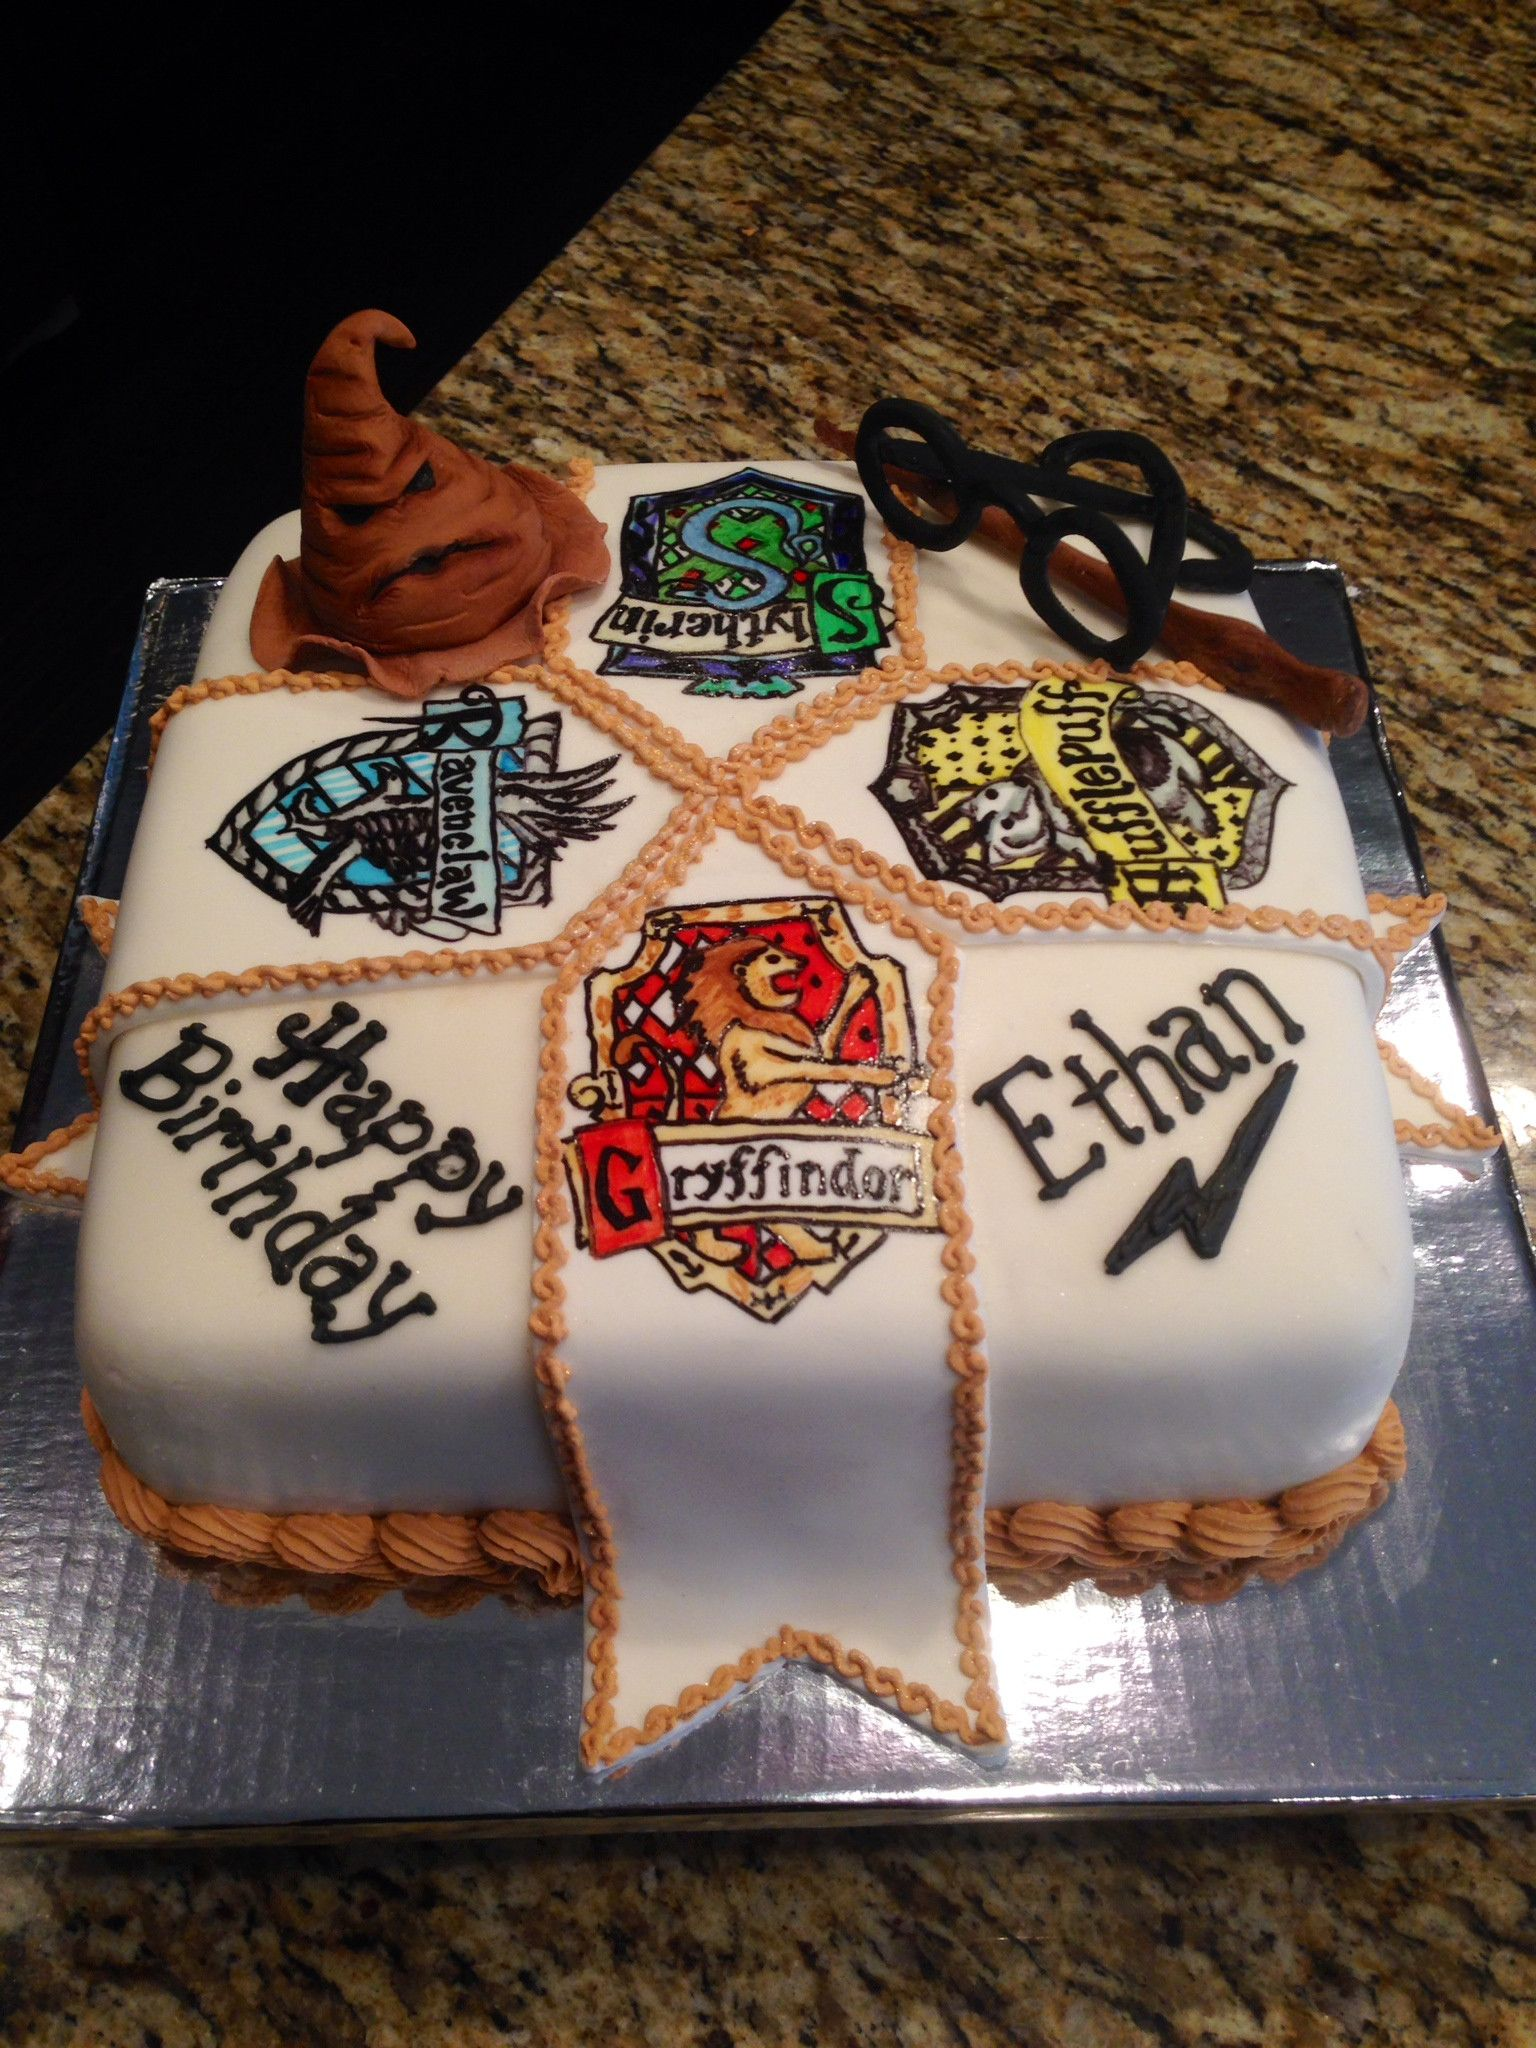 Harry Potter cake... weird that it has the name Ethan on